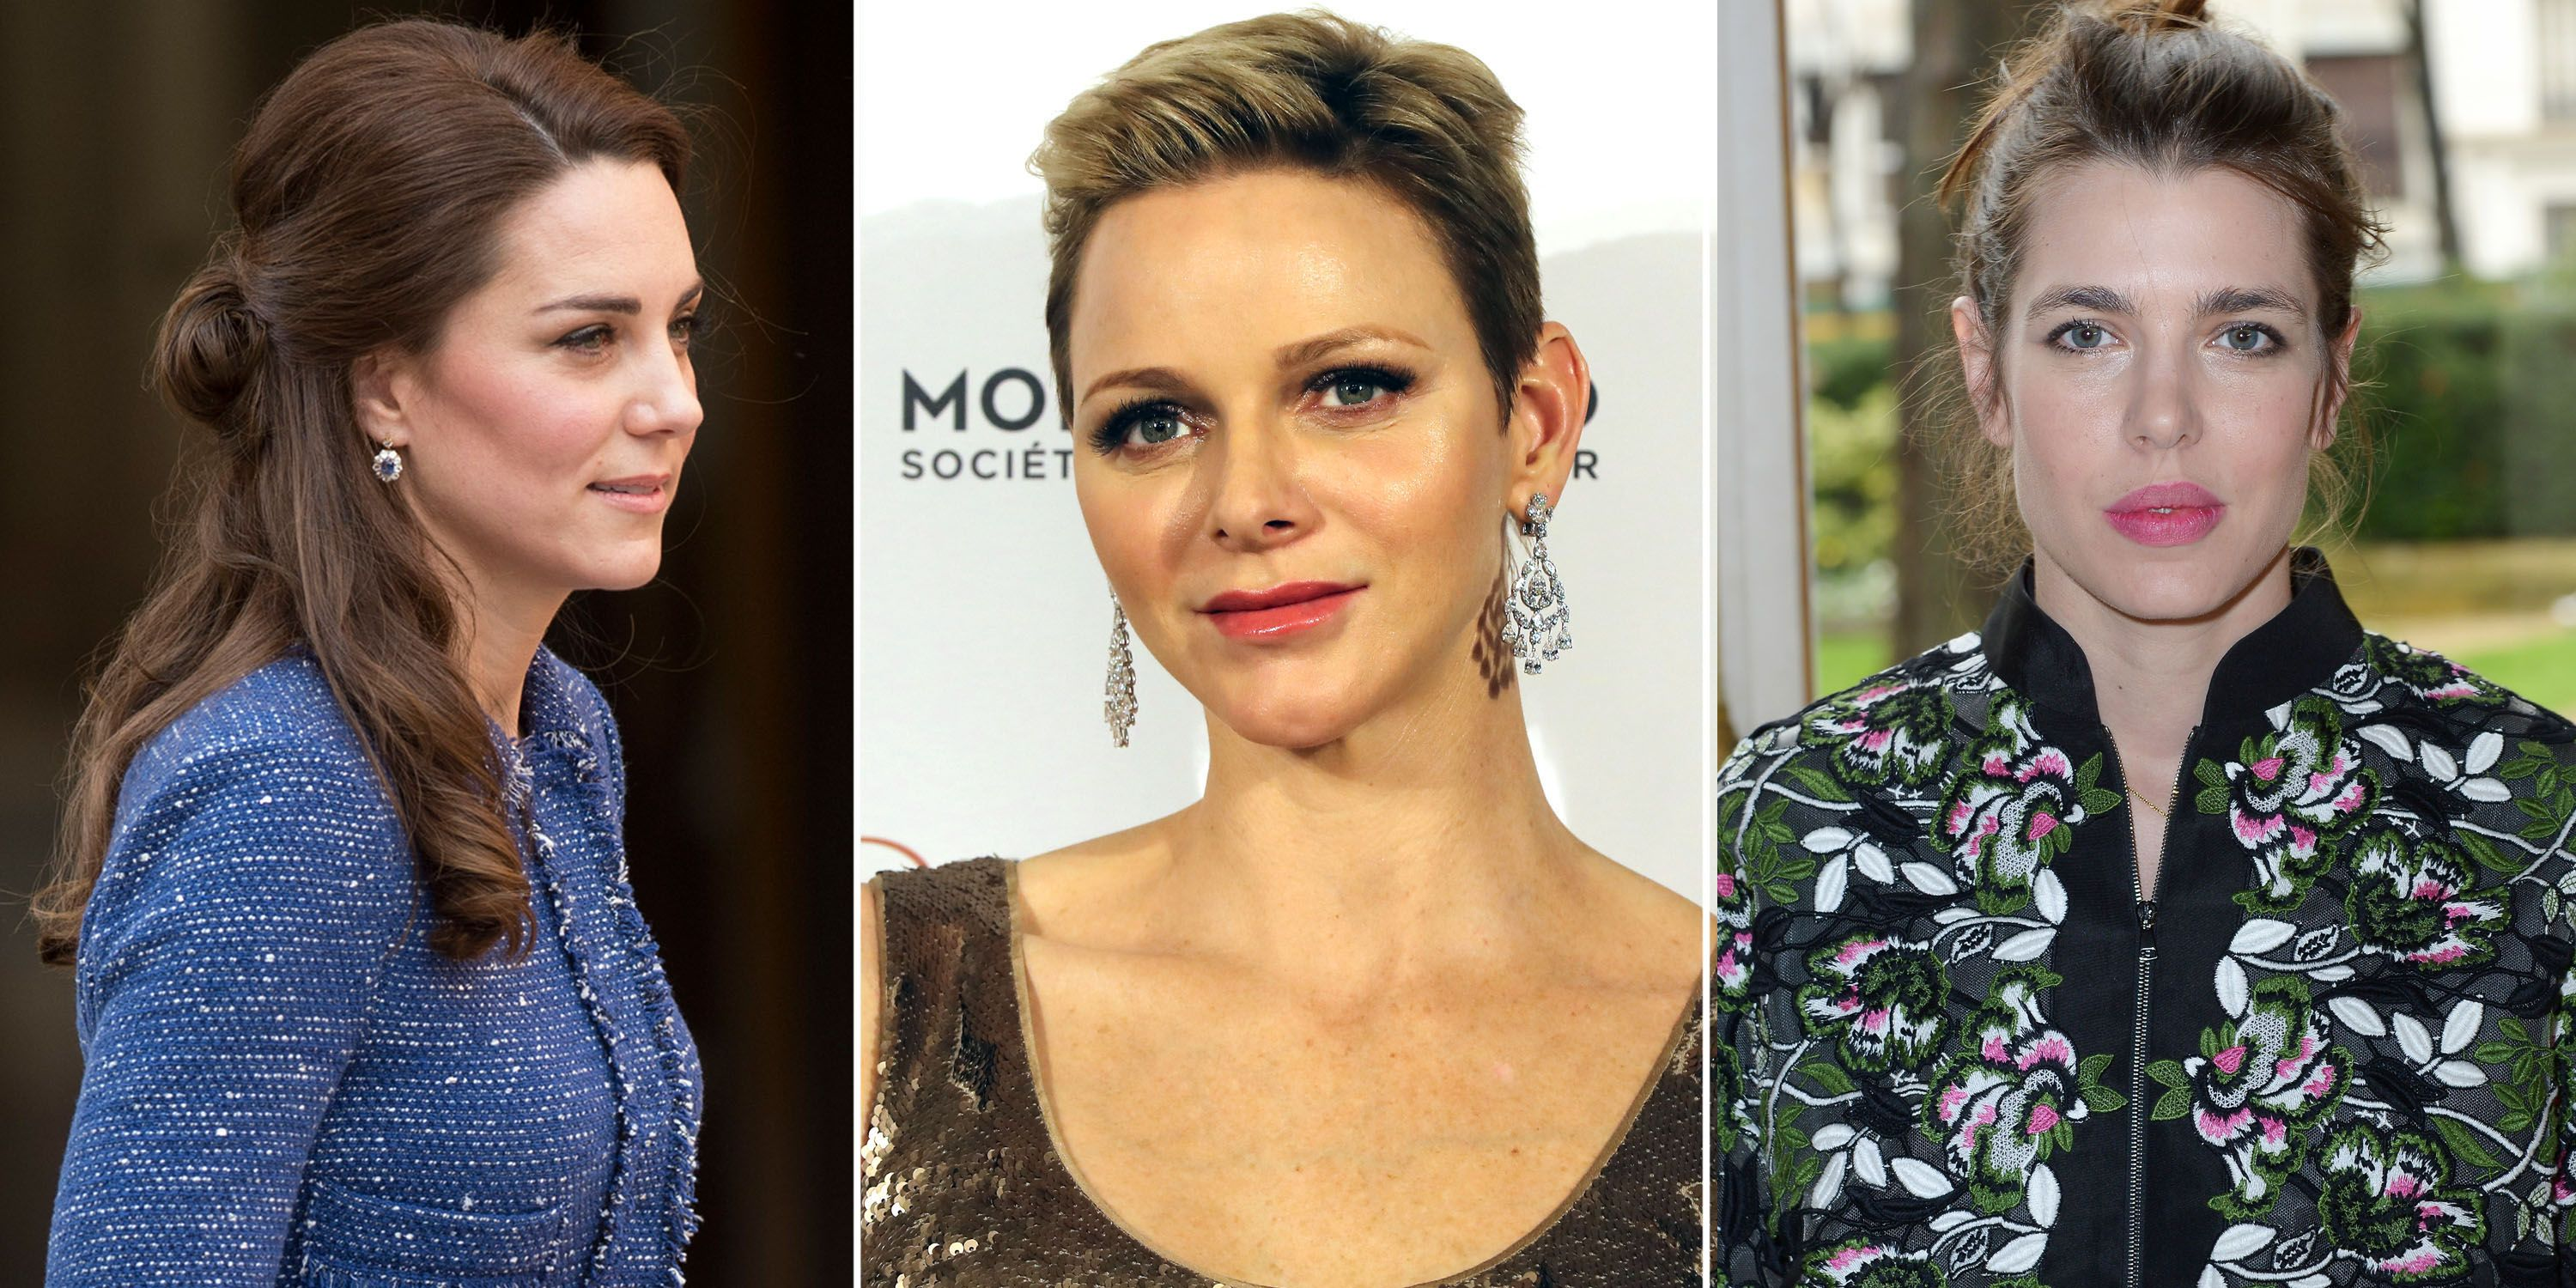 <p>Though movies and fairytales would have you believe that princesses walk around in full gowns and tiaras 24/7—that's obviously not the case. Here, the Duchess of Cambridge, Princess Charlene of Monaco, and Princess Charlotte of Monaco show off what royal beauty looks like in the day-to-day. </p>